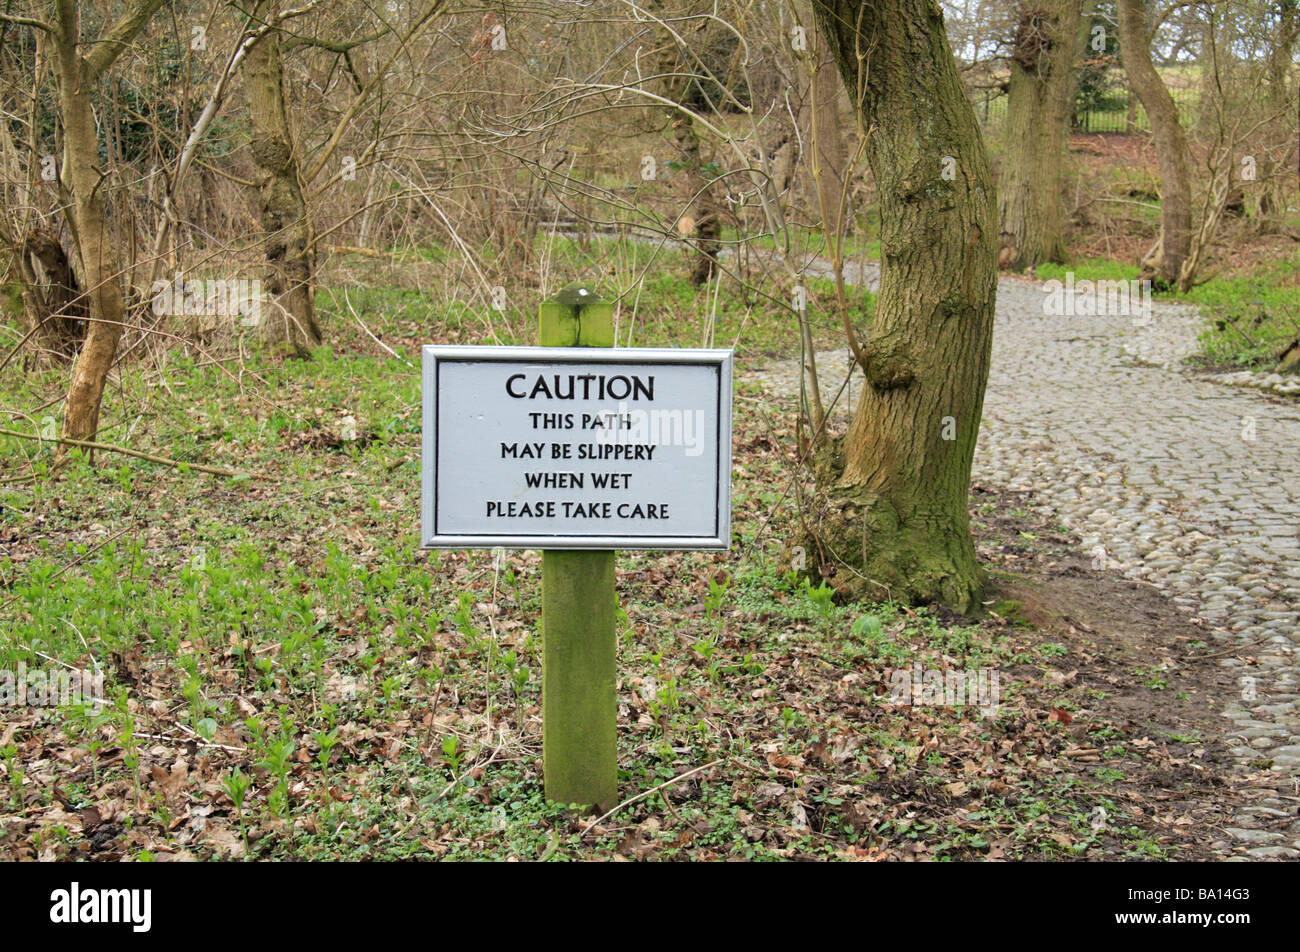 A standard National Trust sign 'This path may be slippery when wet' in Runnymede Surrey. - Stock Image